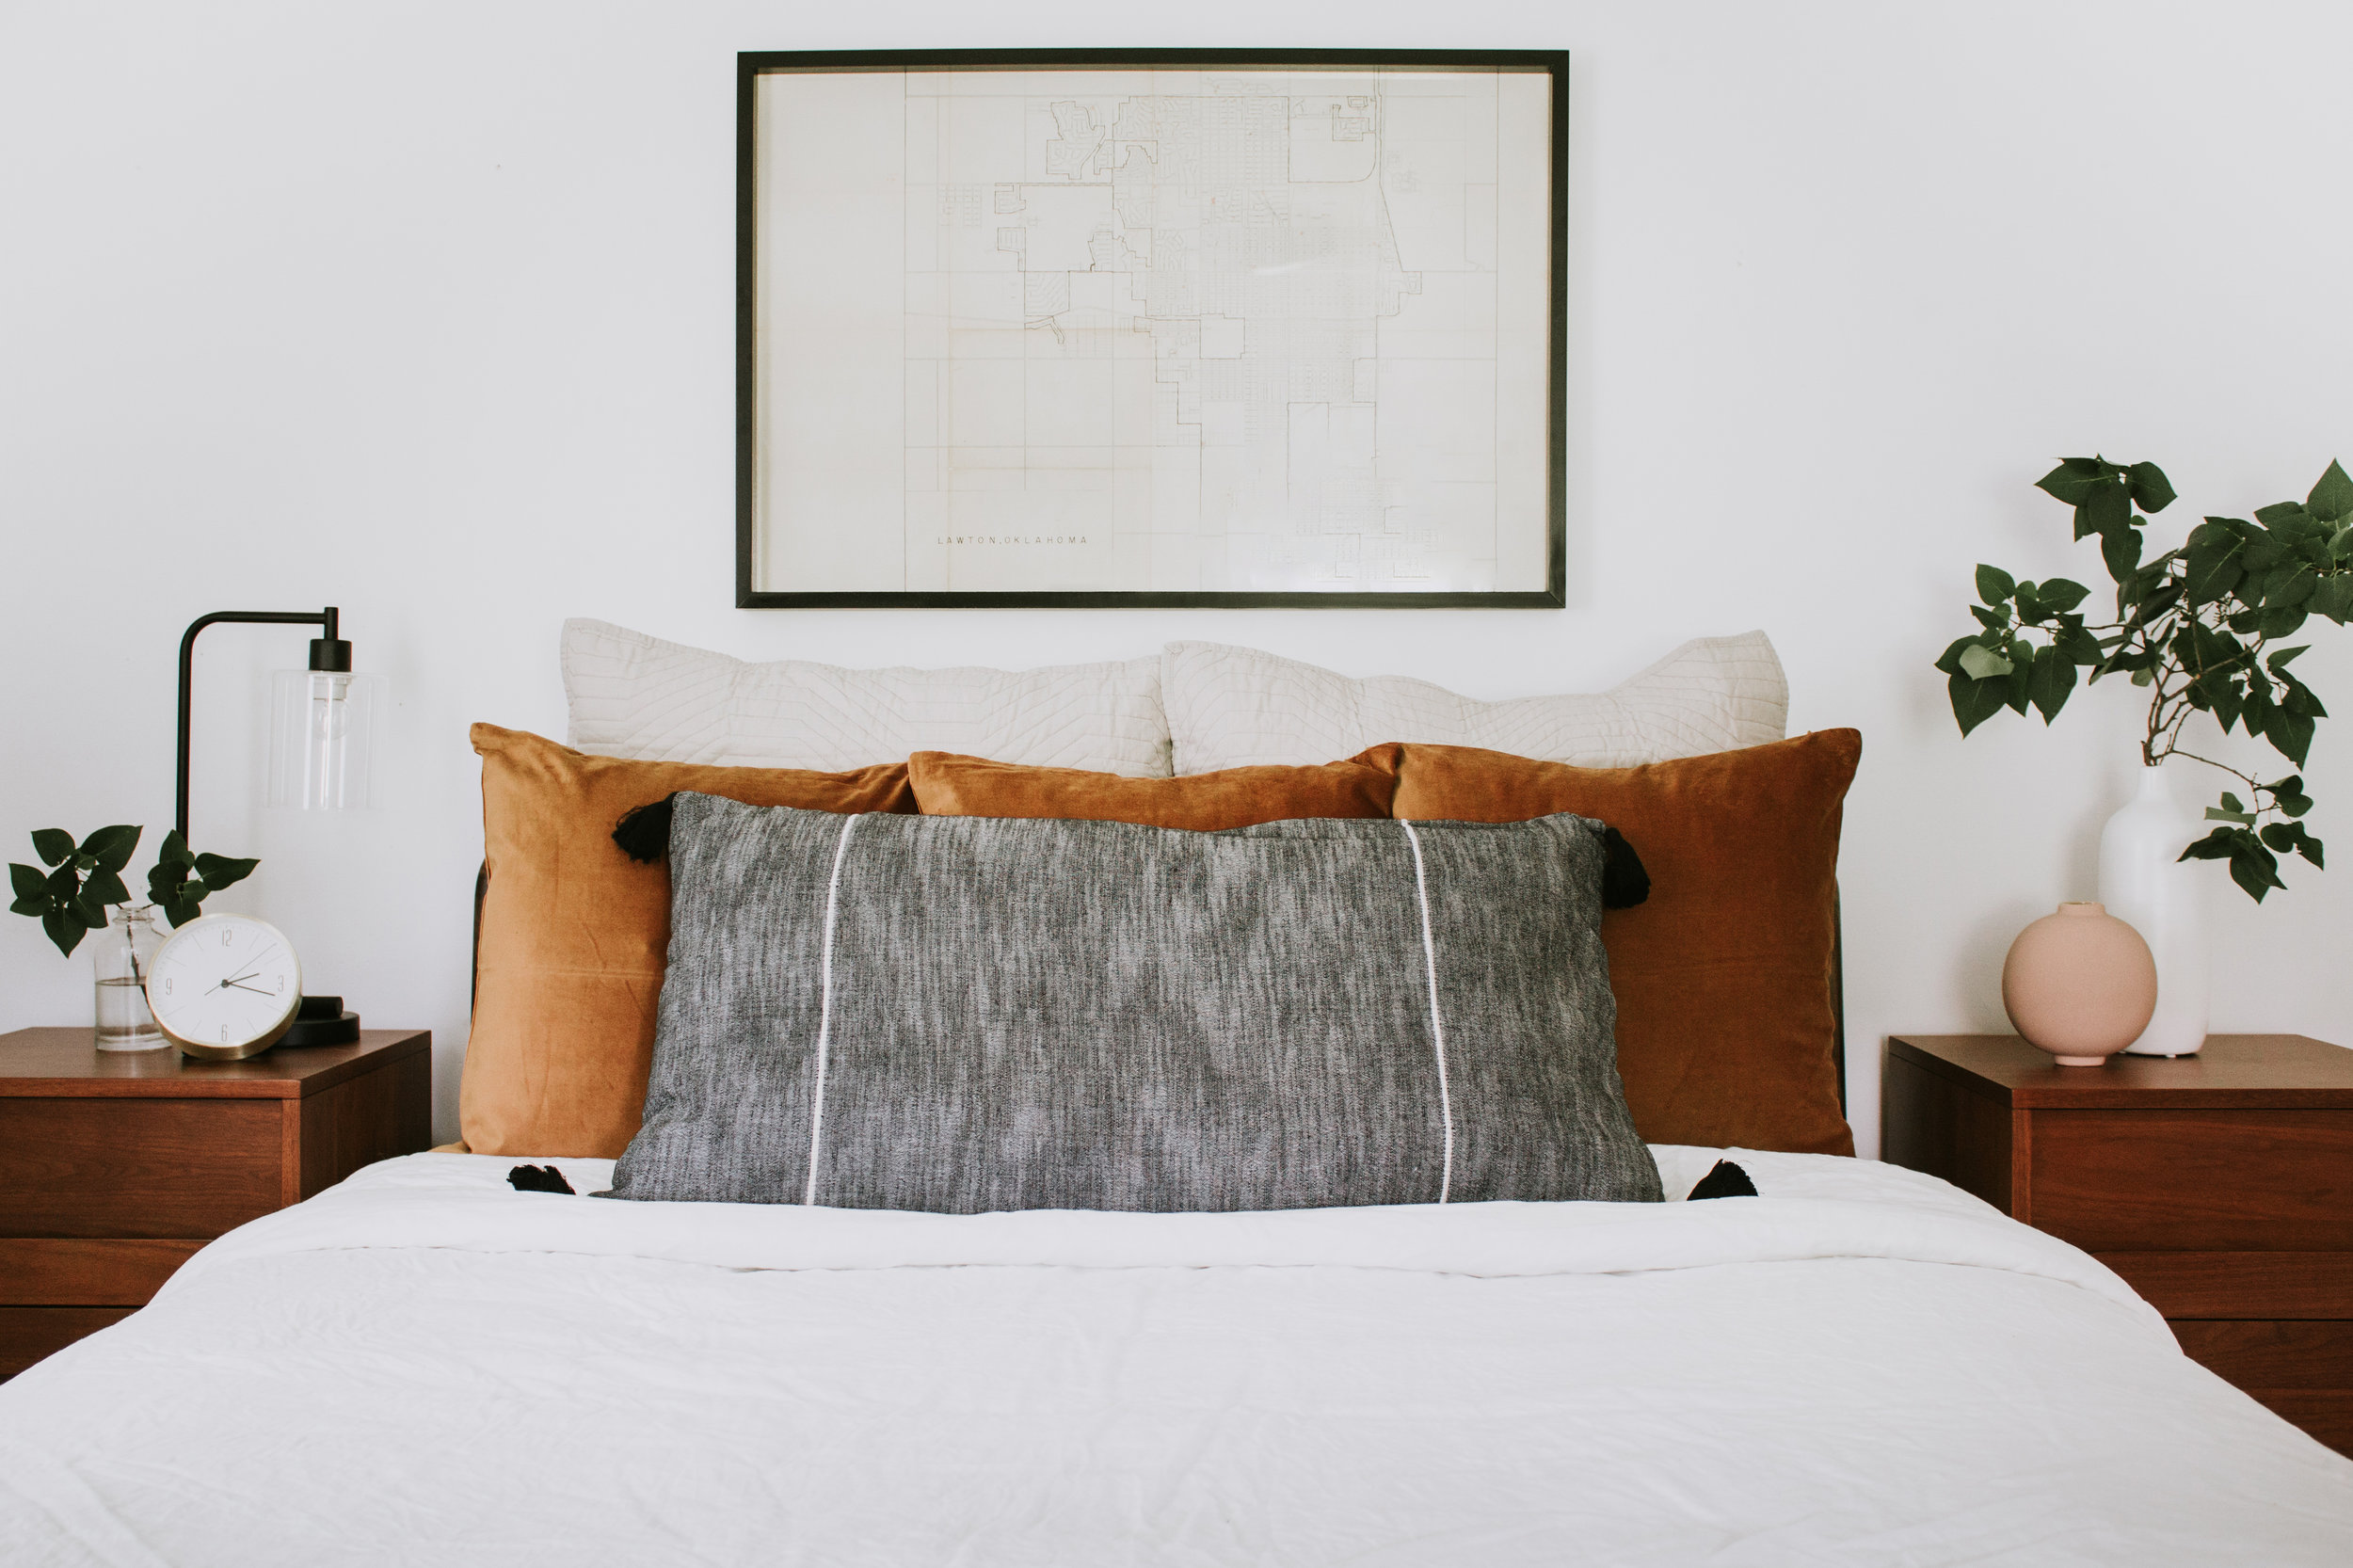 4 different ways to style bed pillows - How to make your bed like an interior designer. 4 pillow layouts and styles by Nadine Stay.